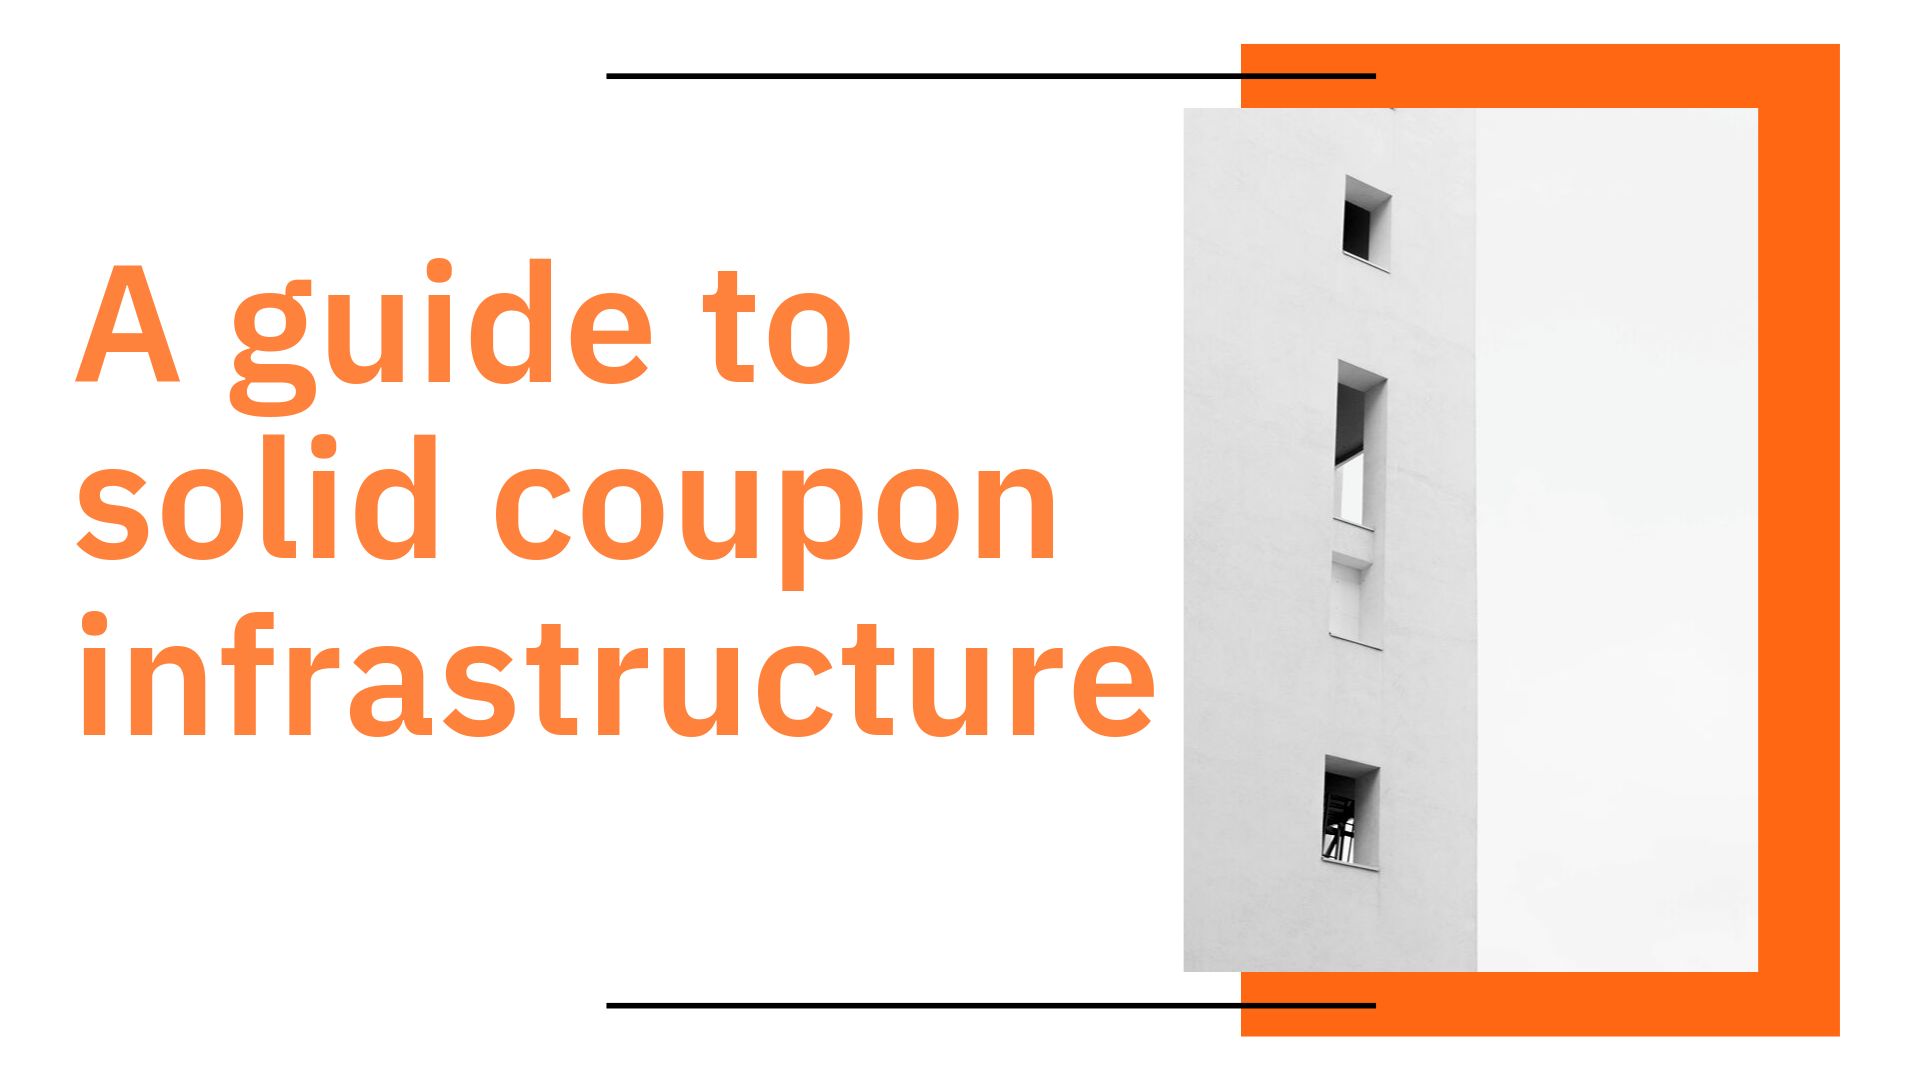 Building a solid coupon infrastructure